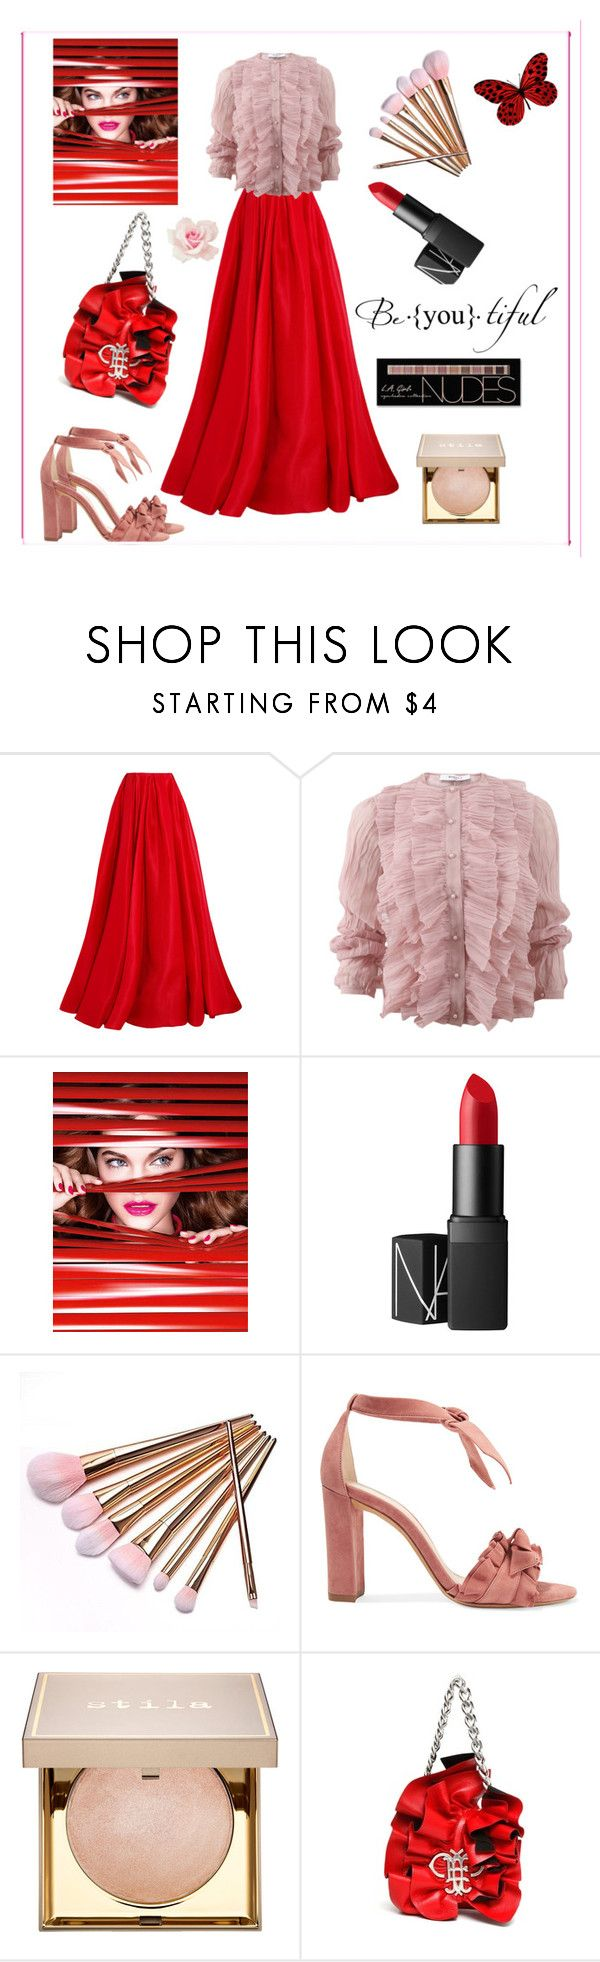 """""""Ruffles Red"""" by boutiquebrowser ❤ liked on Polyvore featuring Reem Acra, Givenchy, L'Oréal Paris, NARS Cosmetics, Alexandre Birman, Stila, Emilio Pucci and Charlotte Russe"""